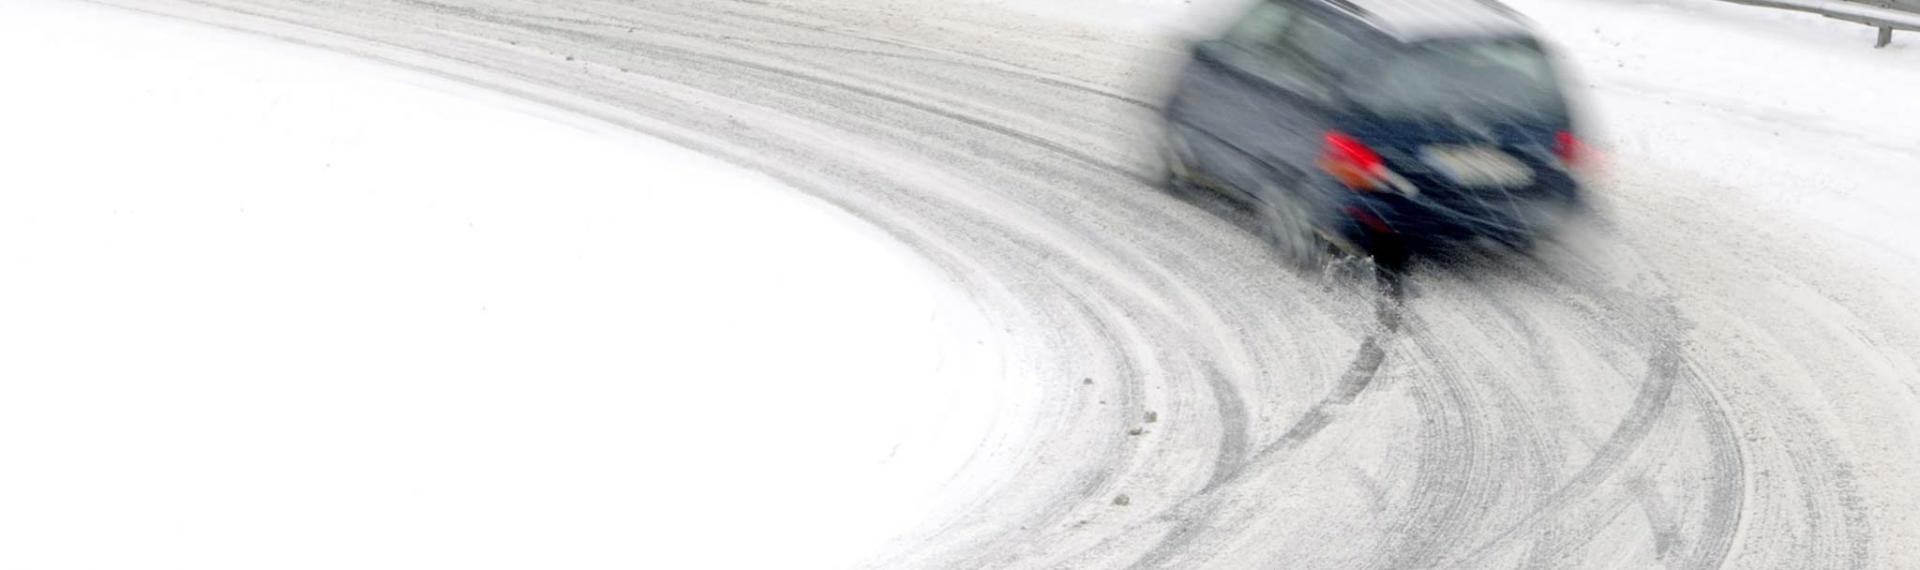 Car driving on snowy road.